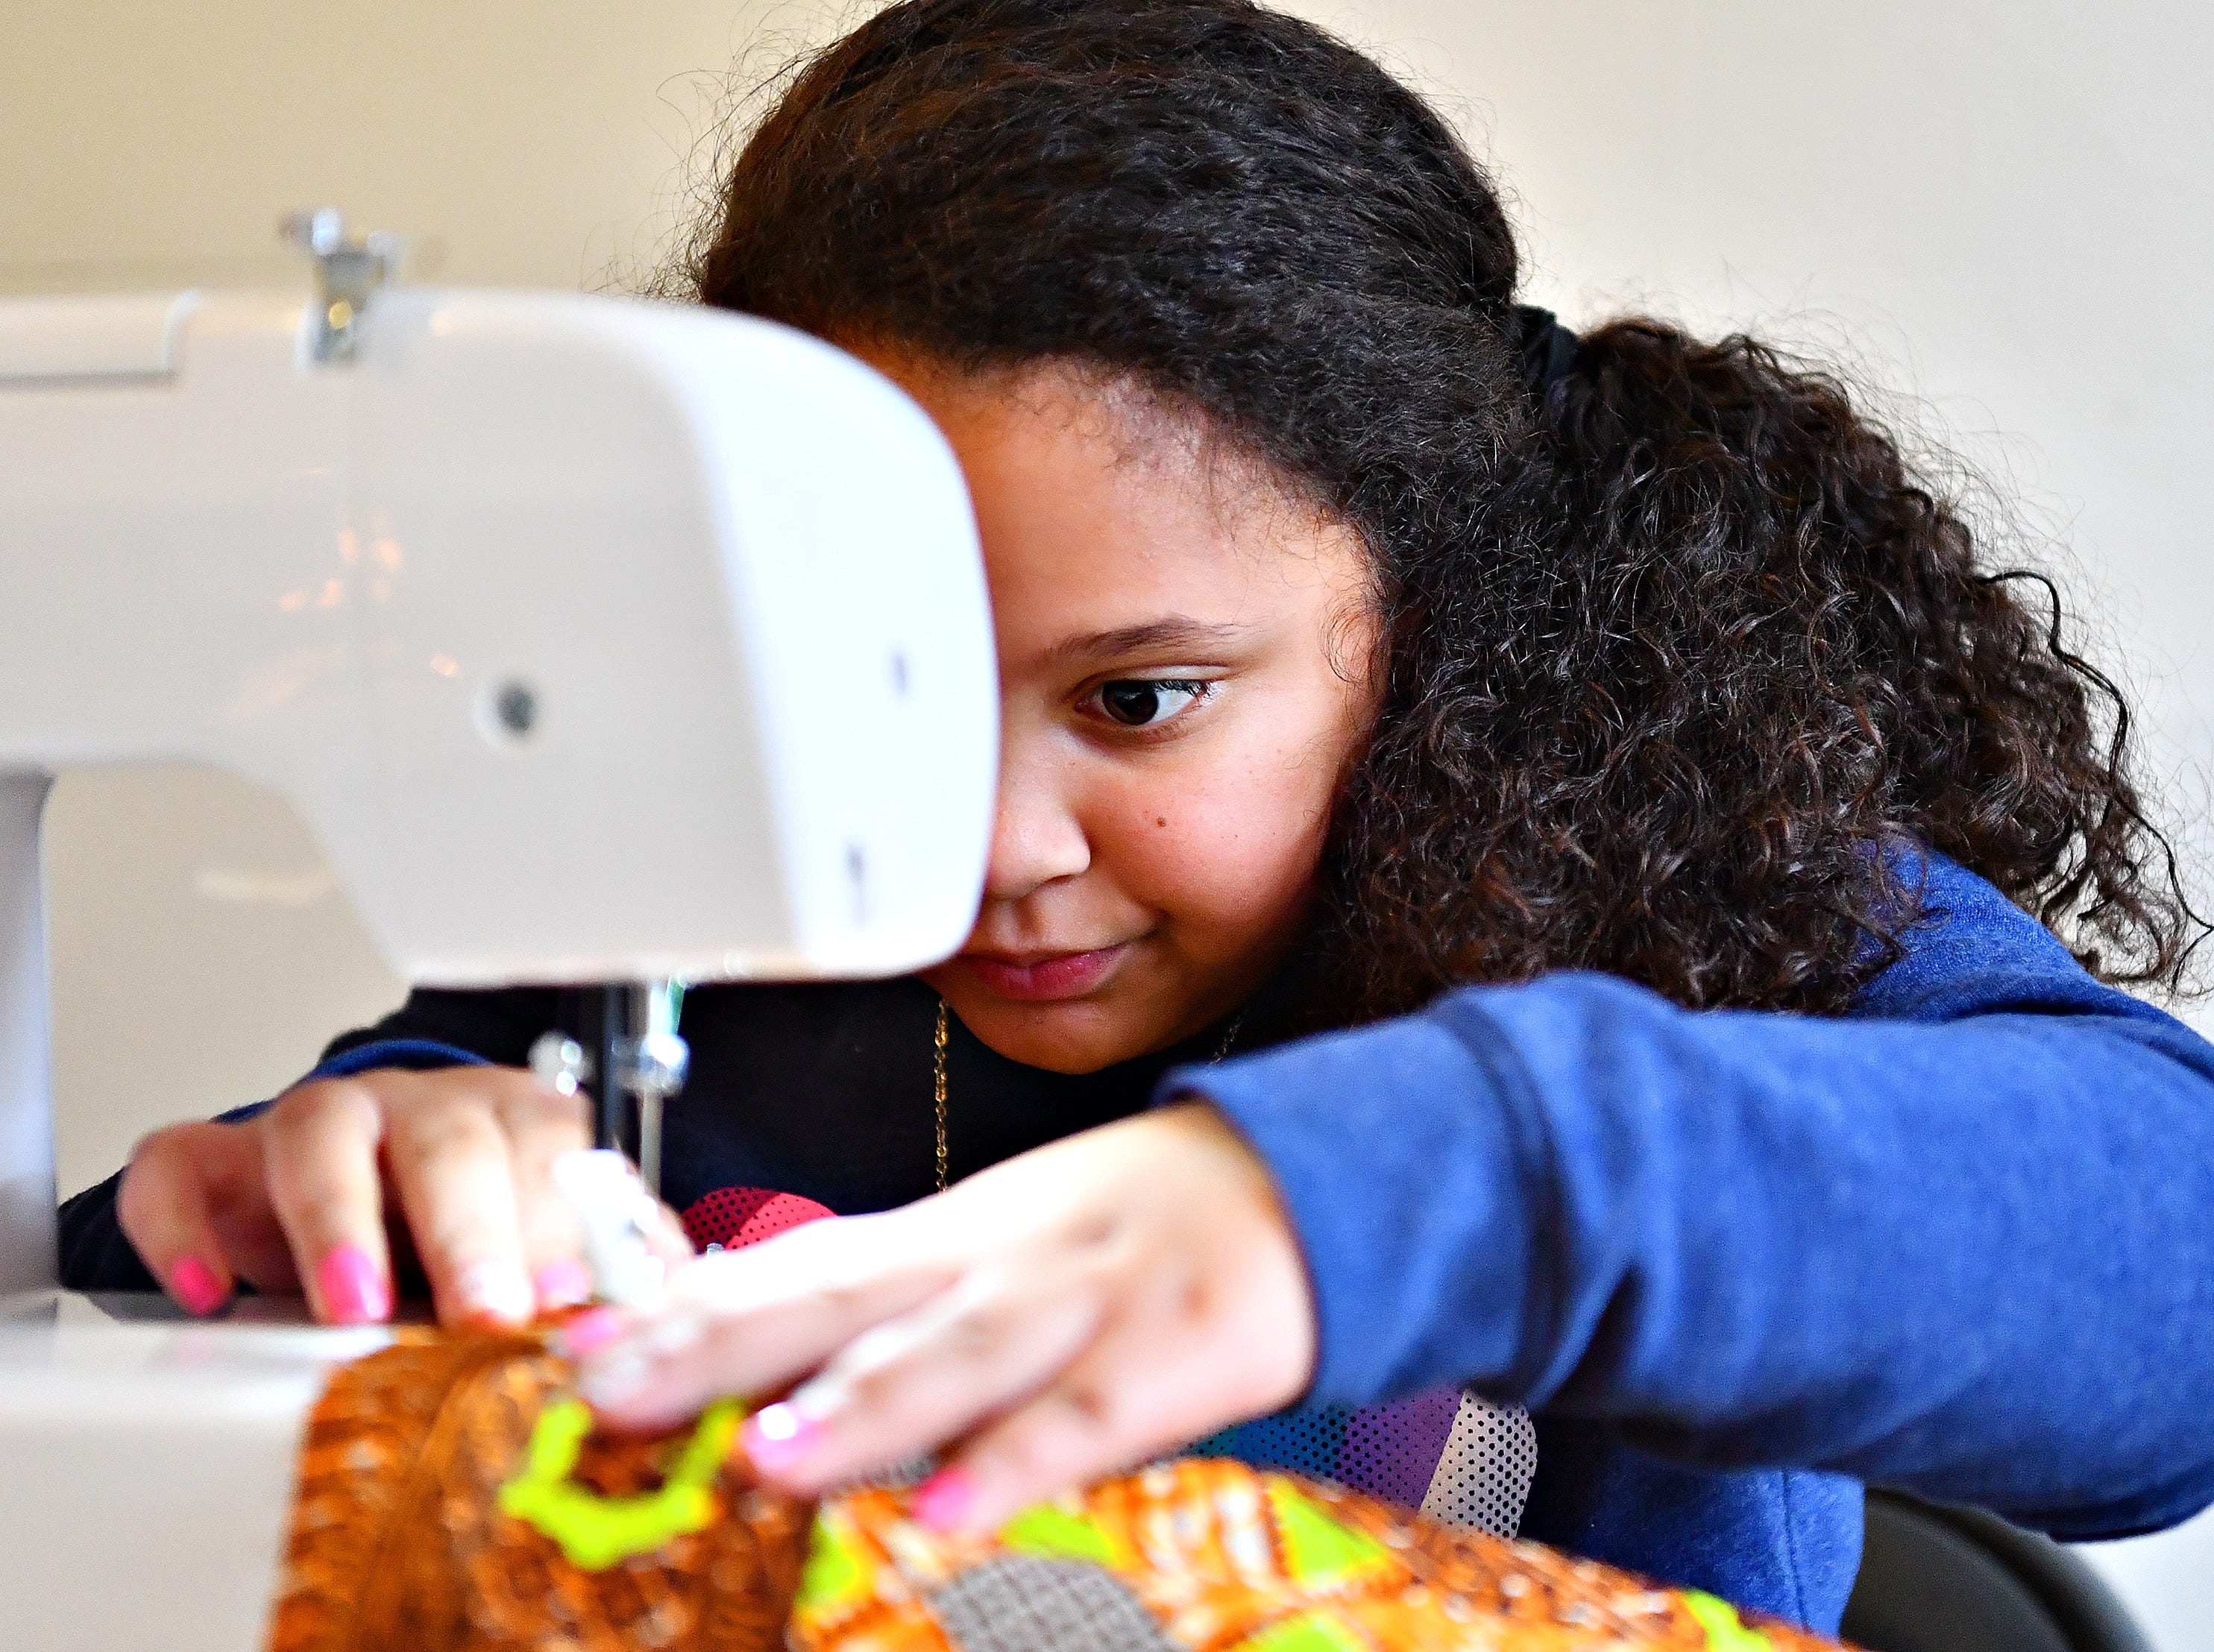 Ariana Kraft, 9, of York City, works on her pillow project during a sewing workshop led by Victoria Kageni-Woodard at her store, Gusa by Victoria, in York City, Saturday, Jan. 5, 2019. Kraft would turn 10 the next day. Dawn J. Sagert photo